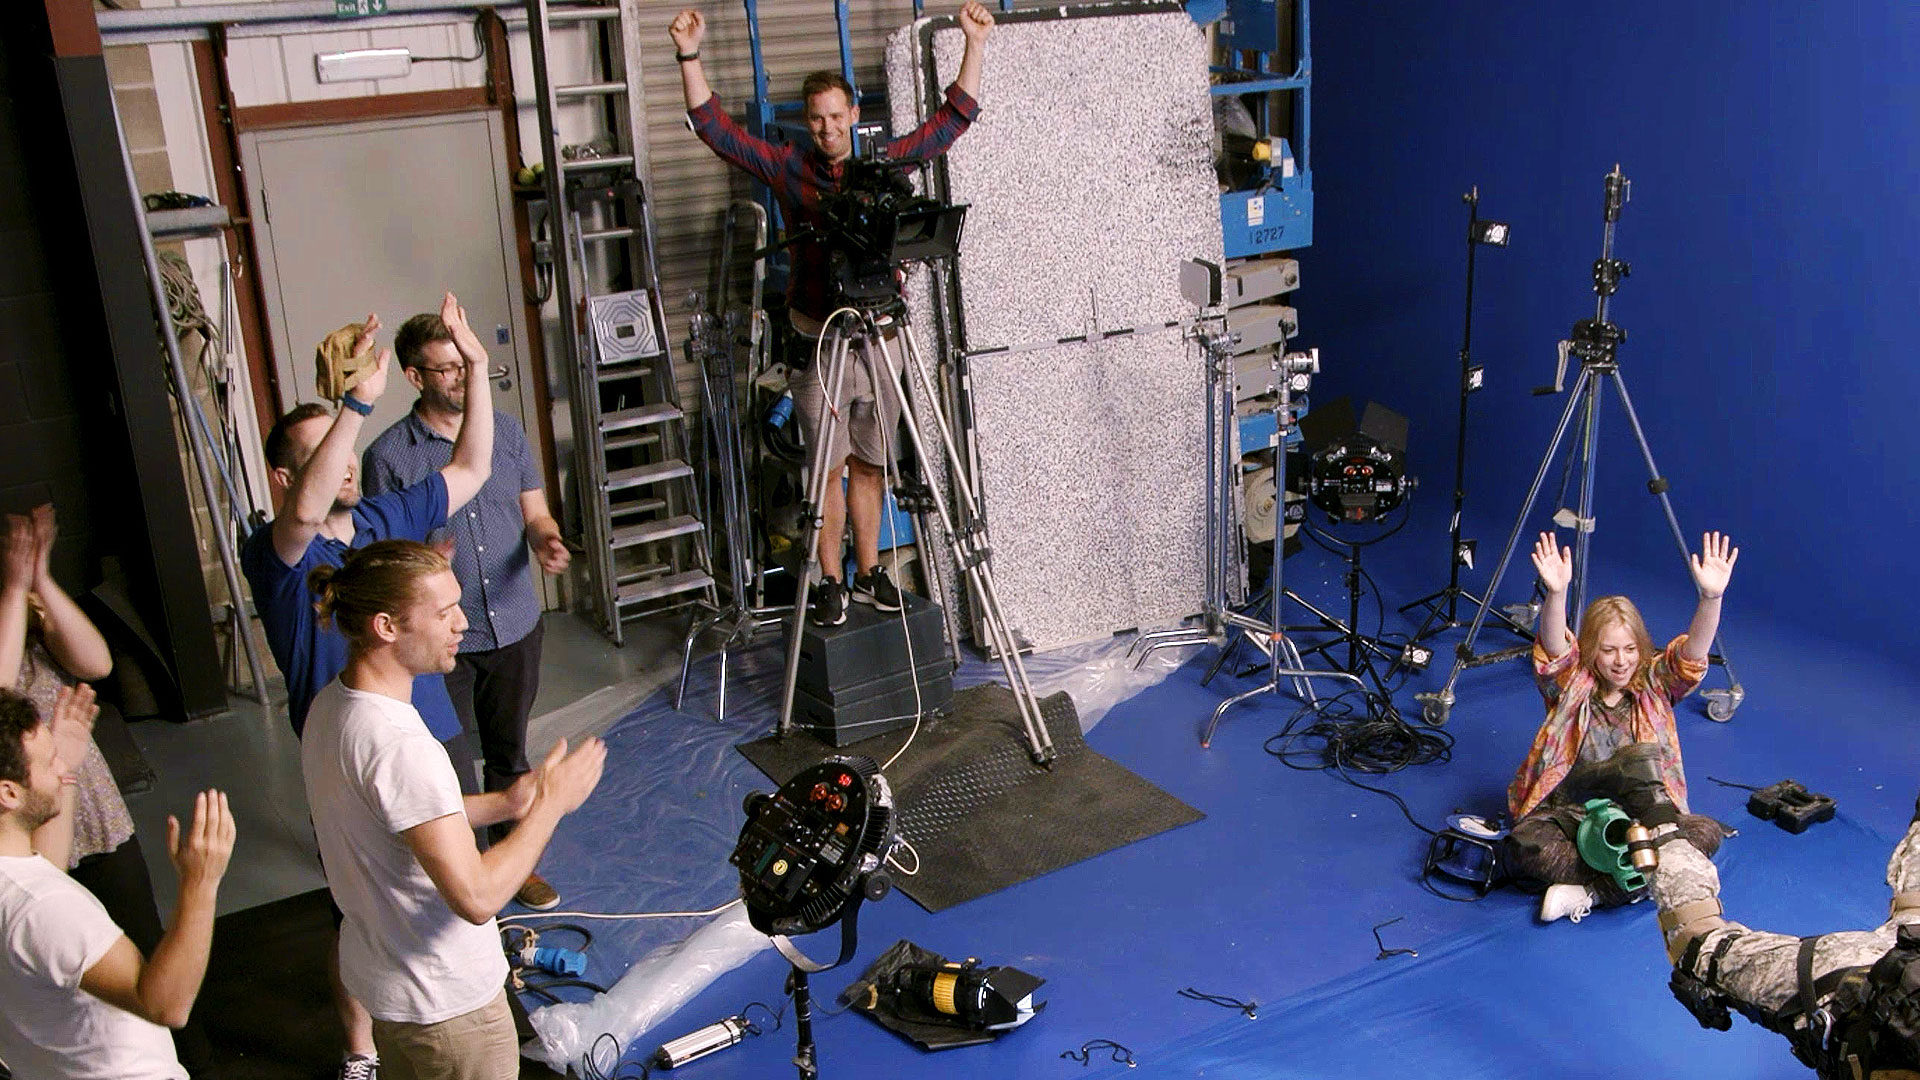 The 3 stages of film production - production (keeping your crew happy)